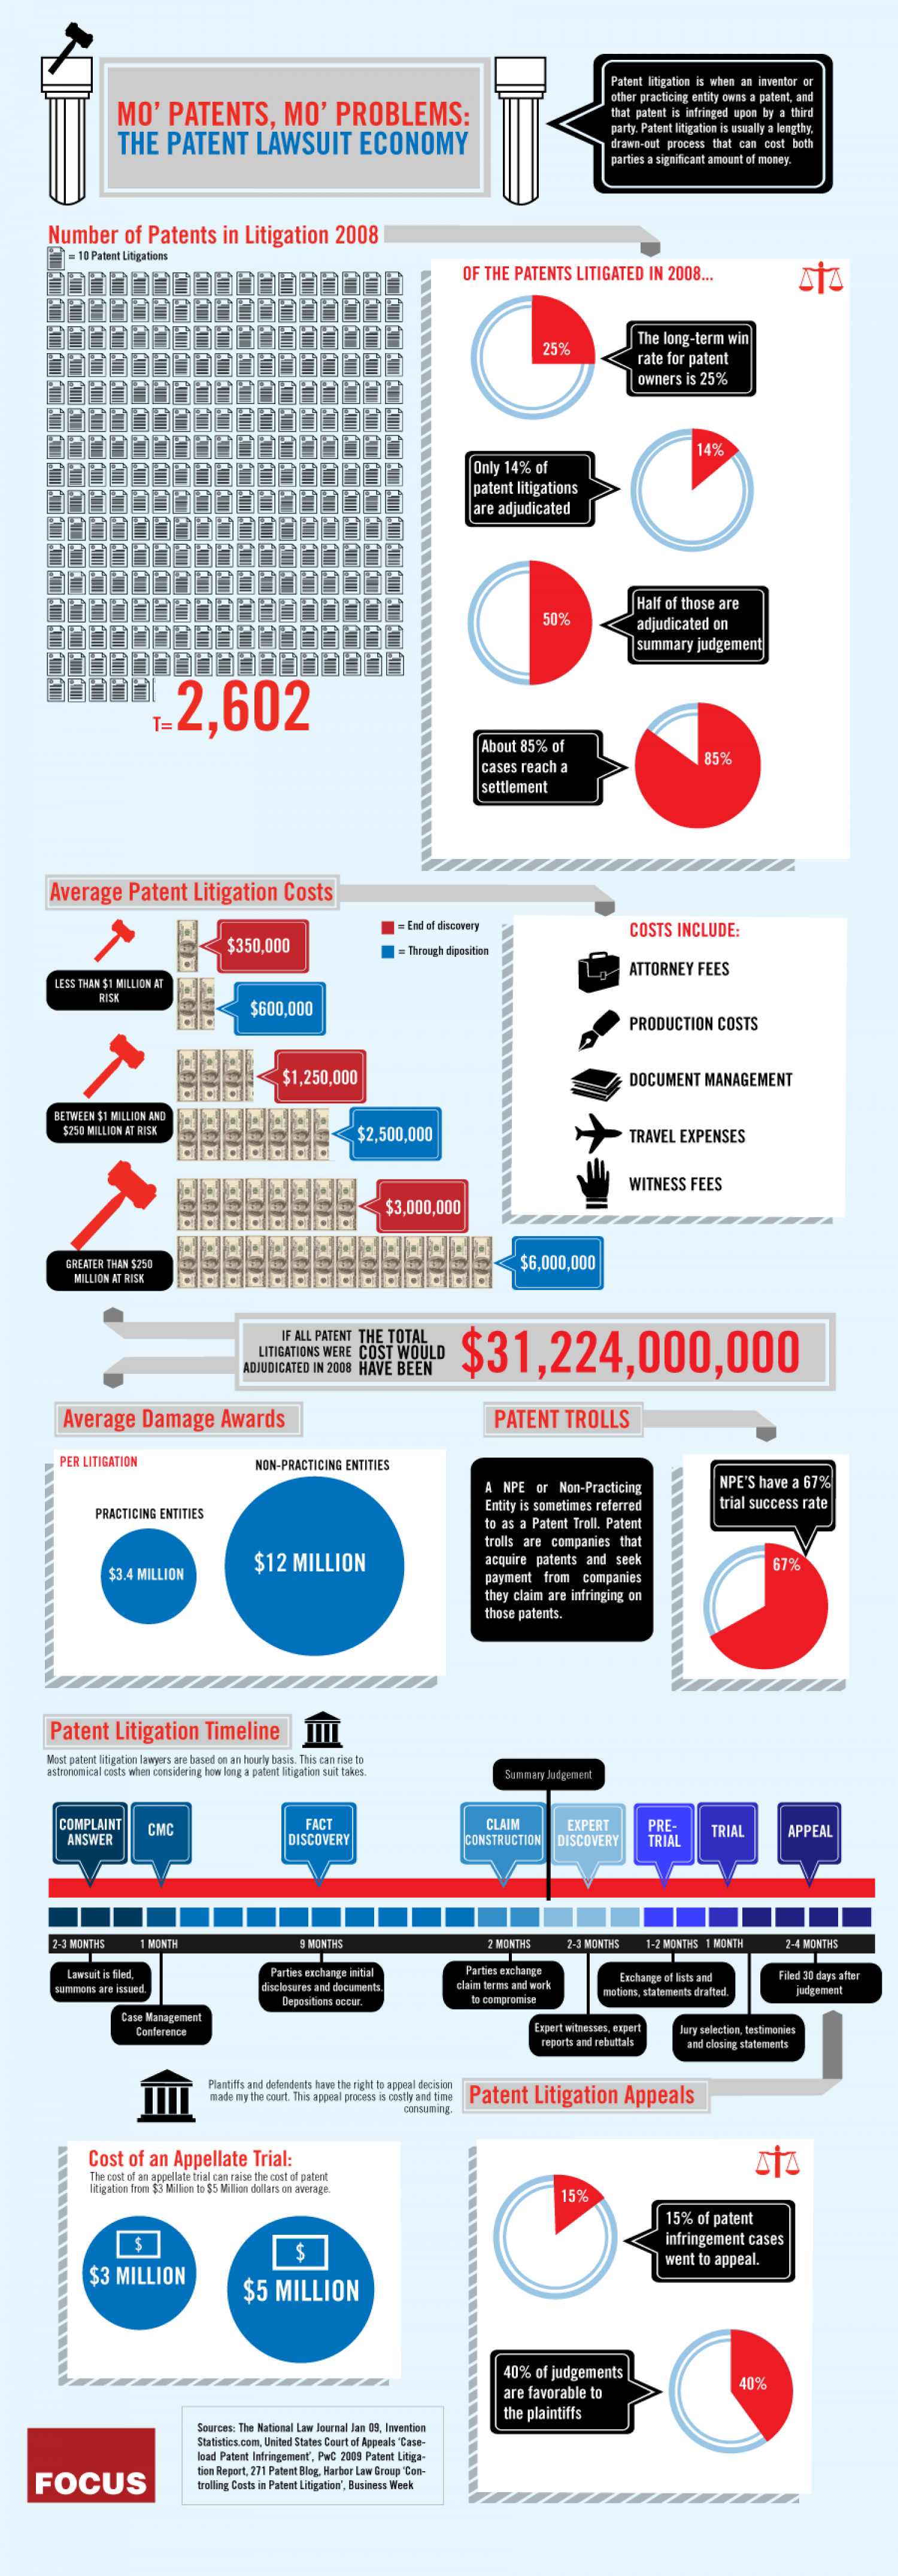 MO Patents, MO Problems: Patent Lawsuit Economy Infographic